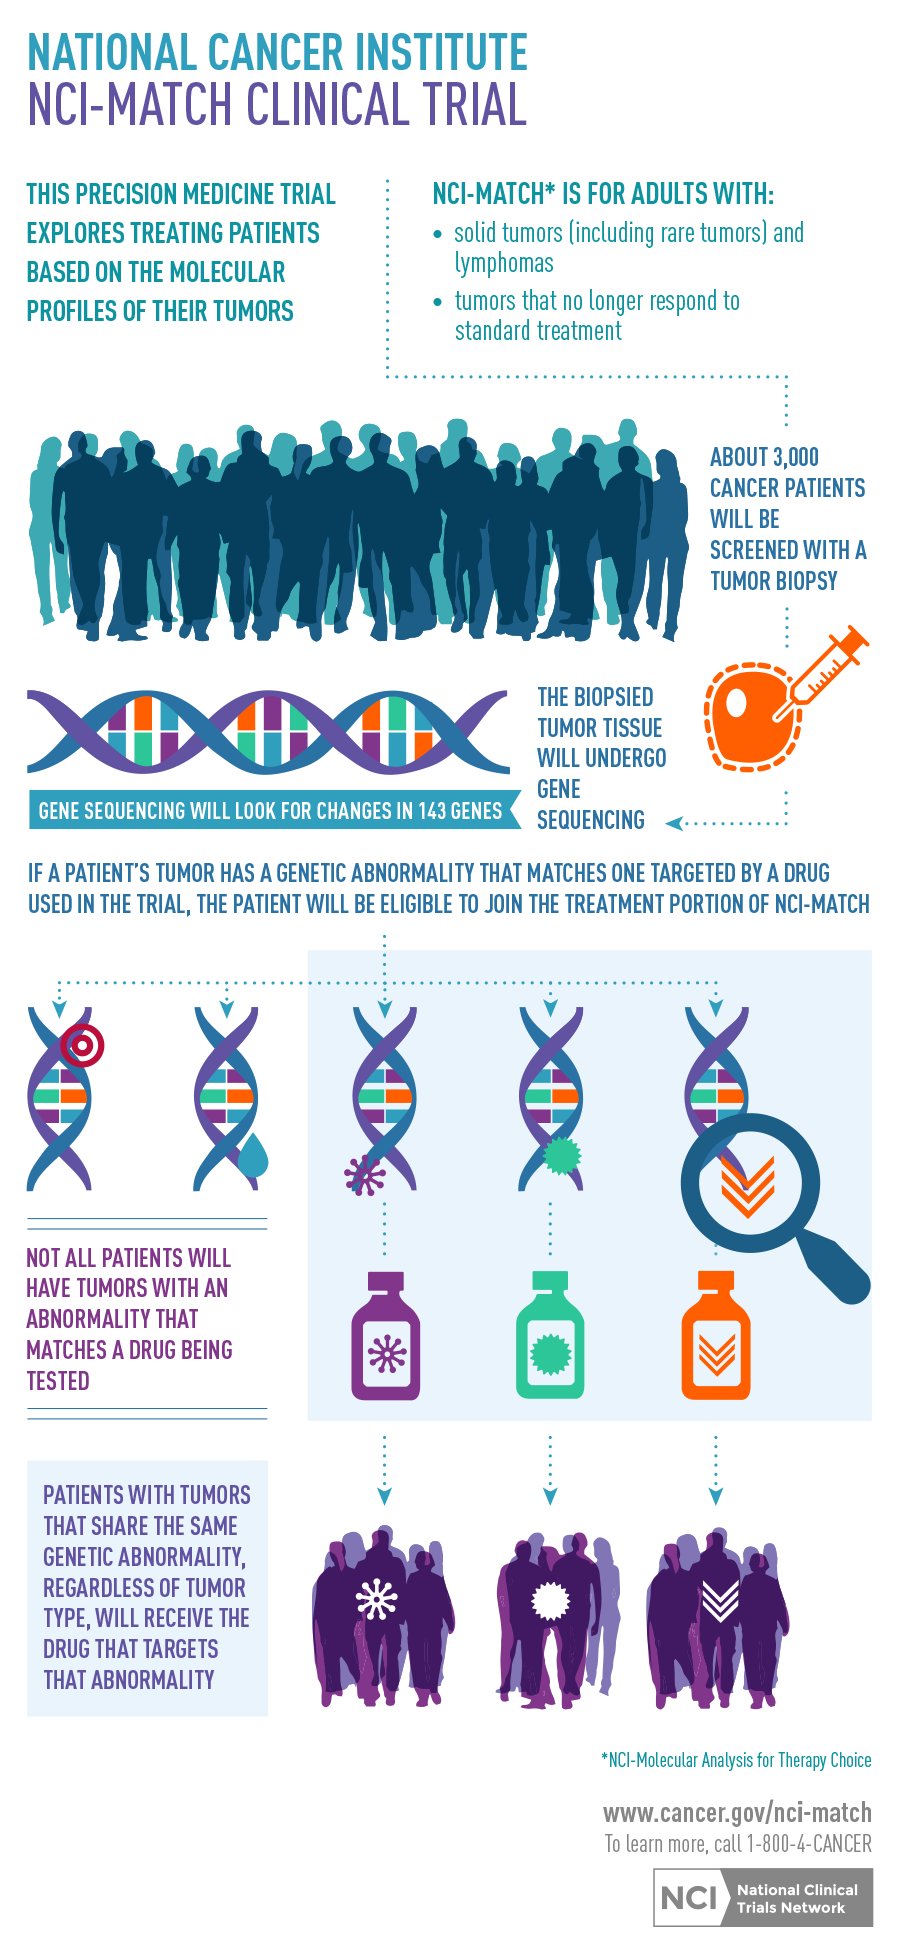 NCI-MATCH Clinical Trial infographic